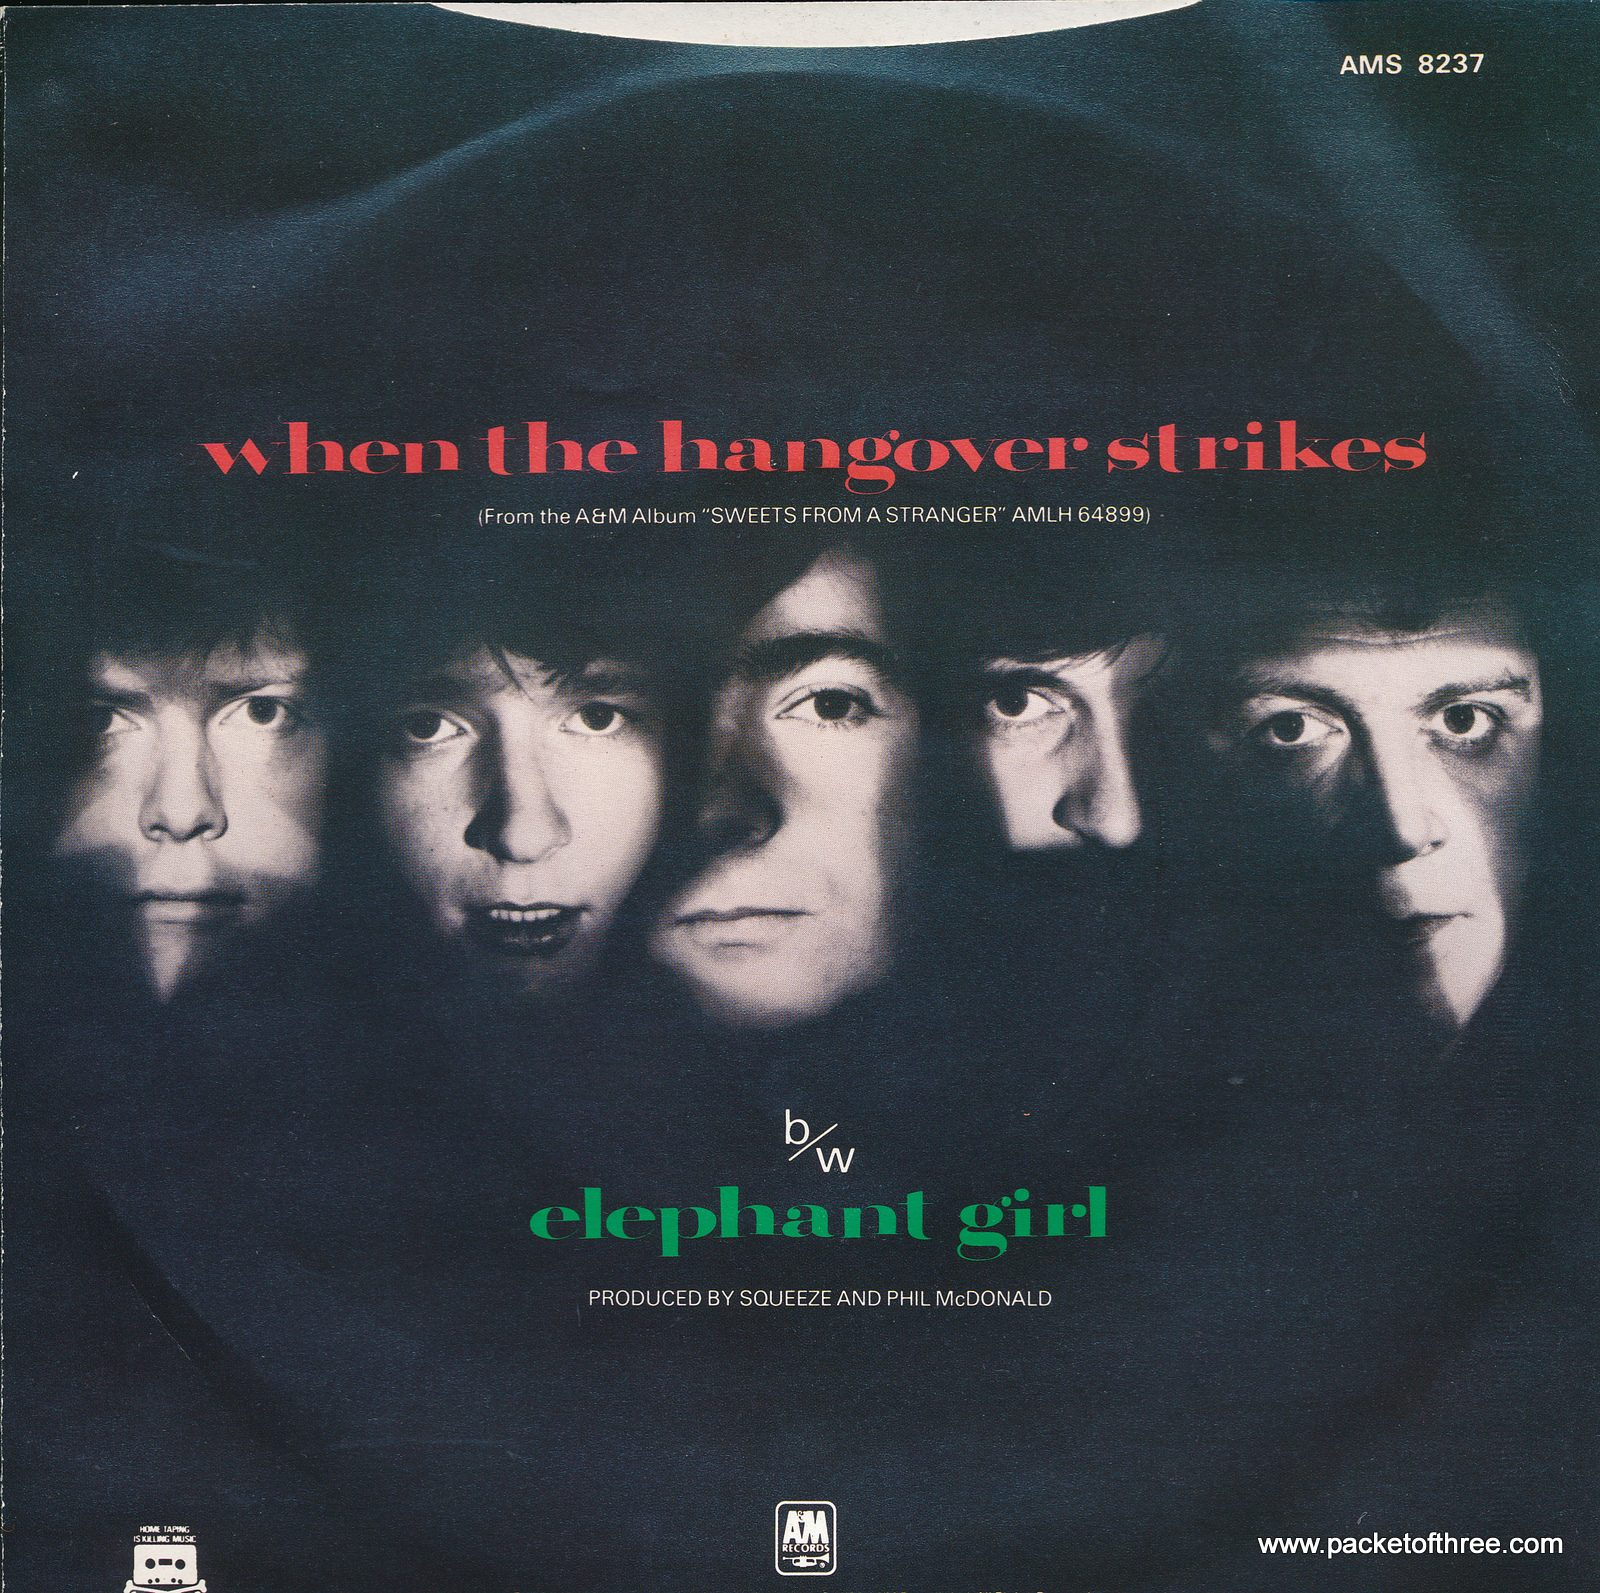 When The Hangover Strikes UK picture sleeve